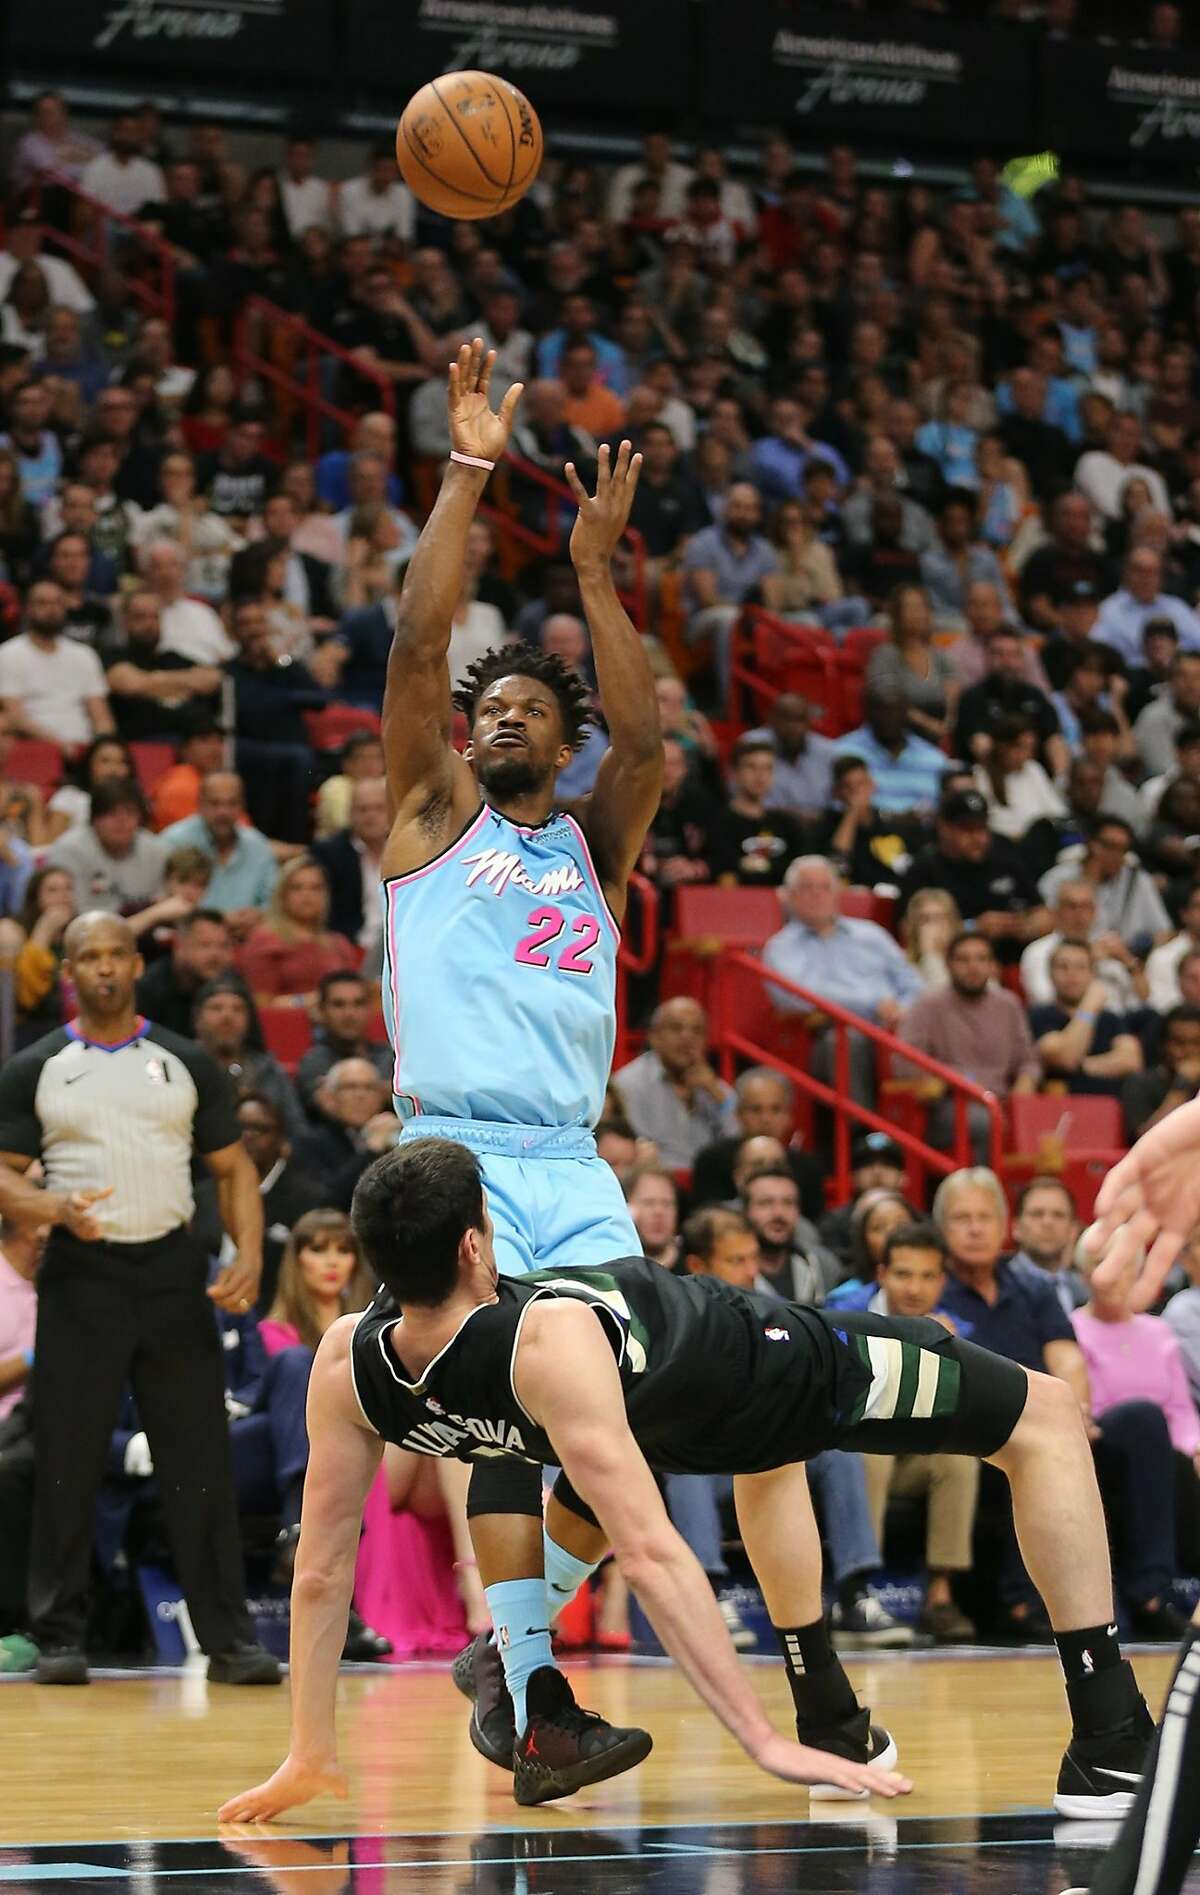 Miami Heat's Jimmy Butler (22) shoots over Milwaukee Bucks' Ersan Liyasova (77) in the fourth quarter at the AmericanAirlines Arena on March 2, 2020 in Miami. The Heat won, 105-89. (Charles Trainor Jr./Miami Herald/TNS)